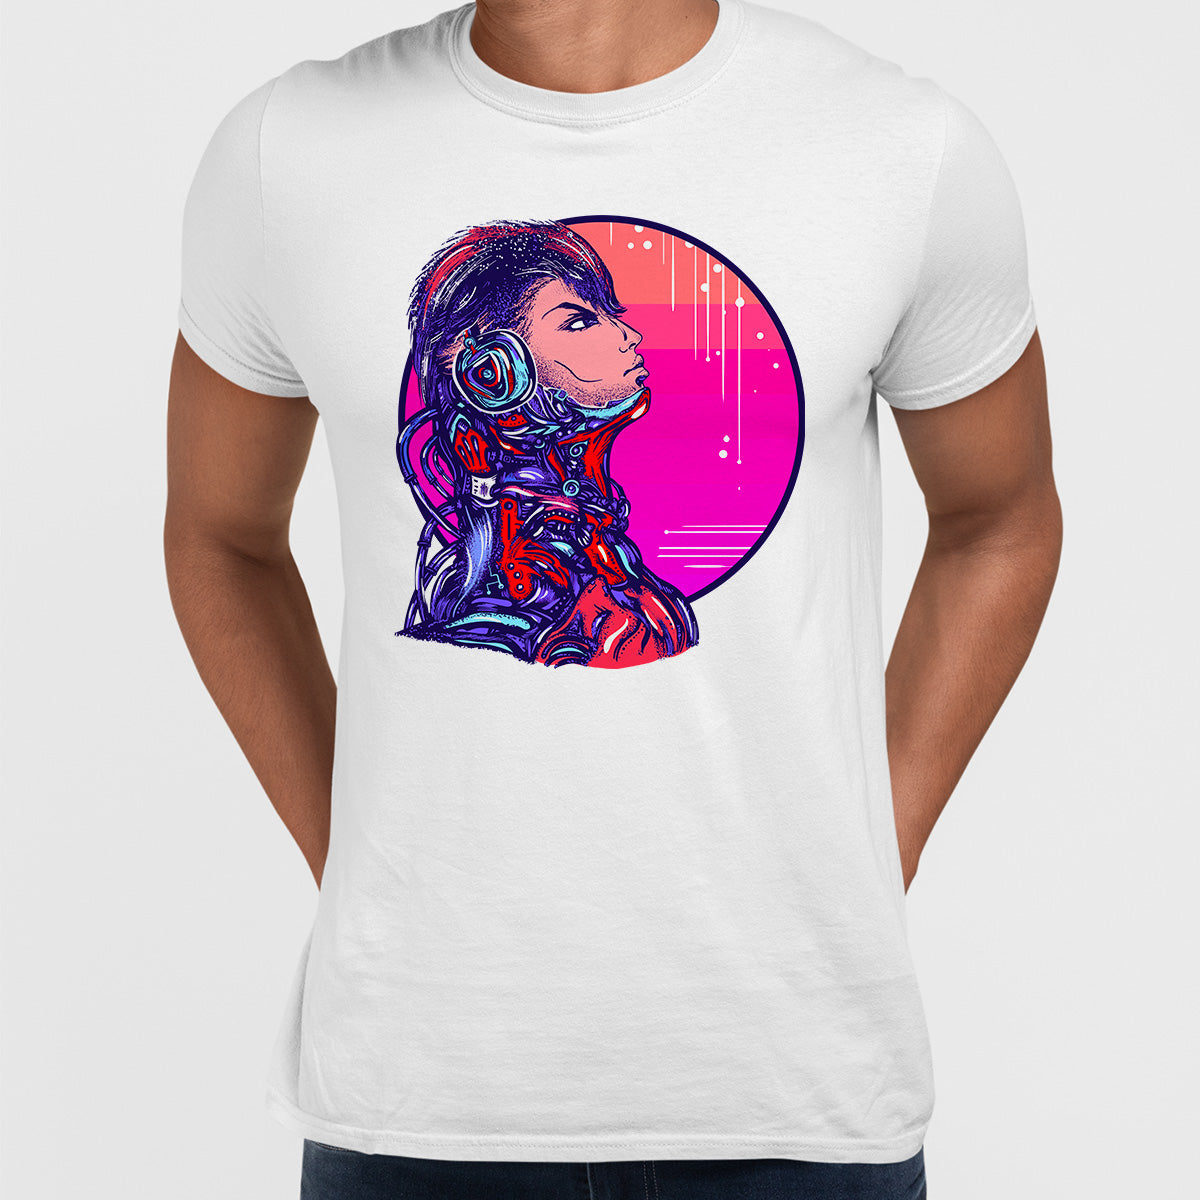 Cyberpunk Art Robot With headphones Biomechanical soldier Unisex White t-shirt